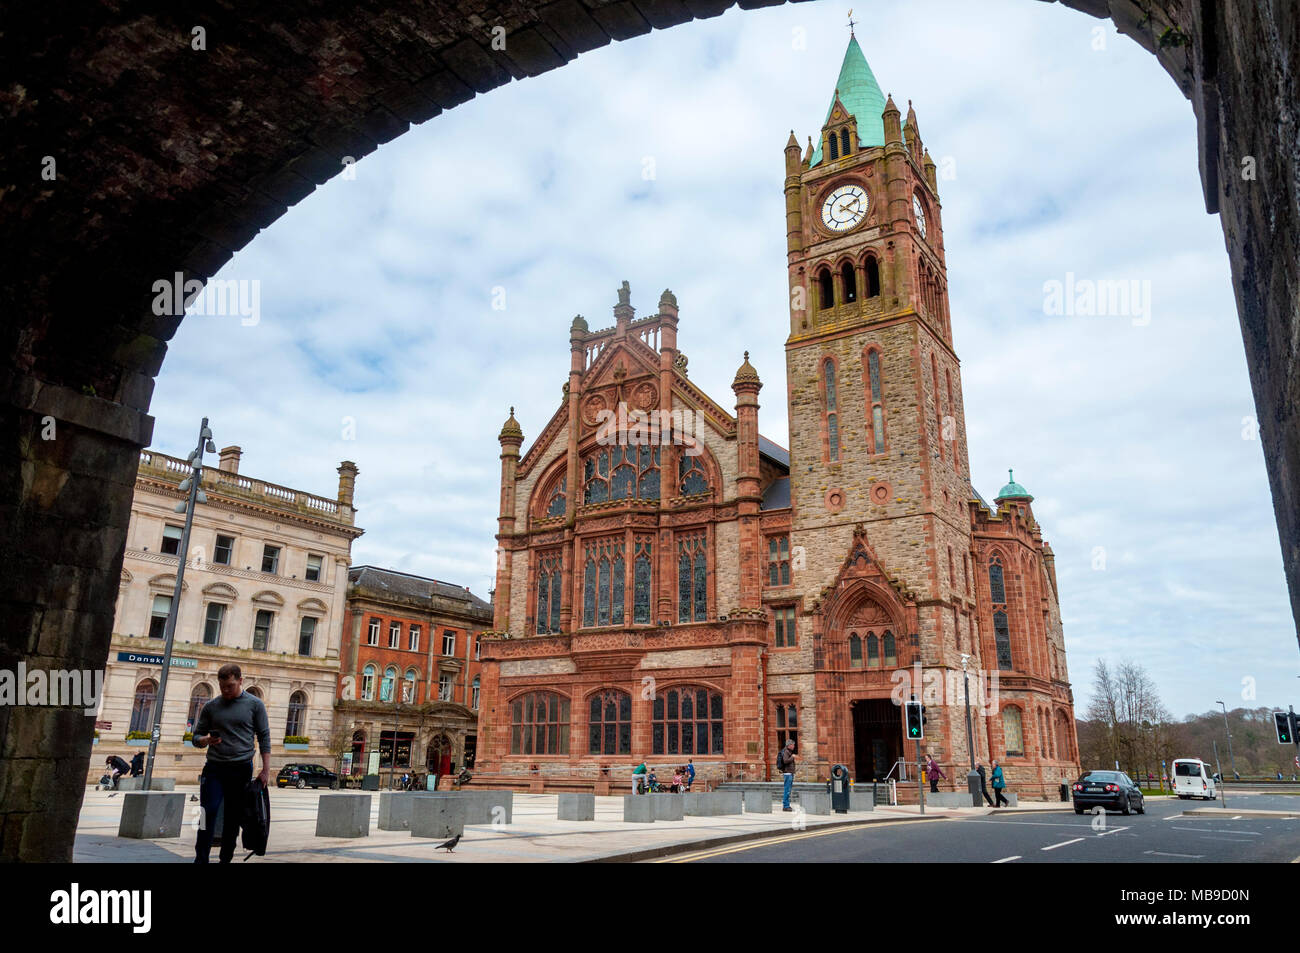 The Guildhall, Londonderry, Derry, City of Derry, Northern Ireland, UK - Stock Image